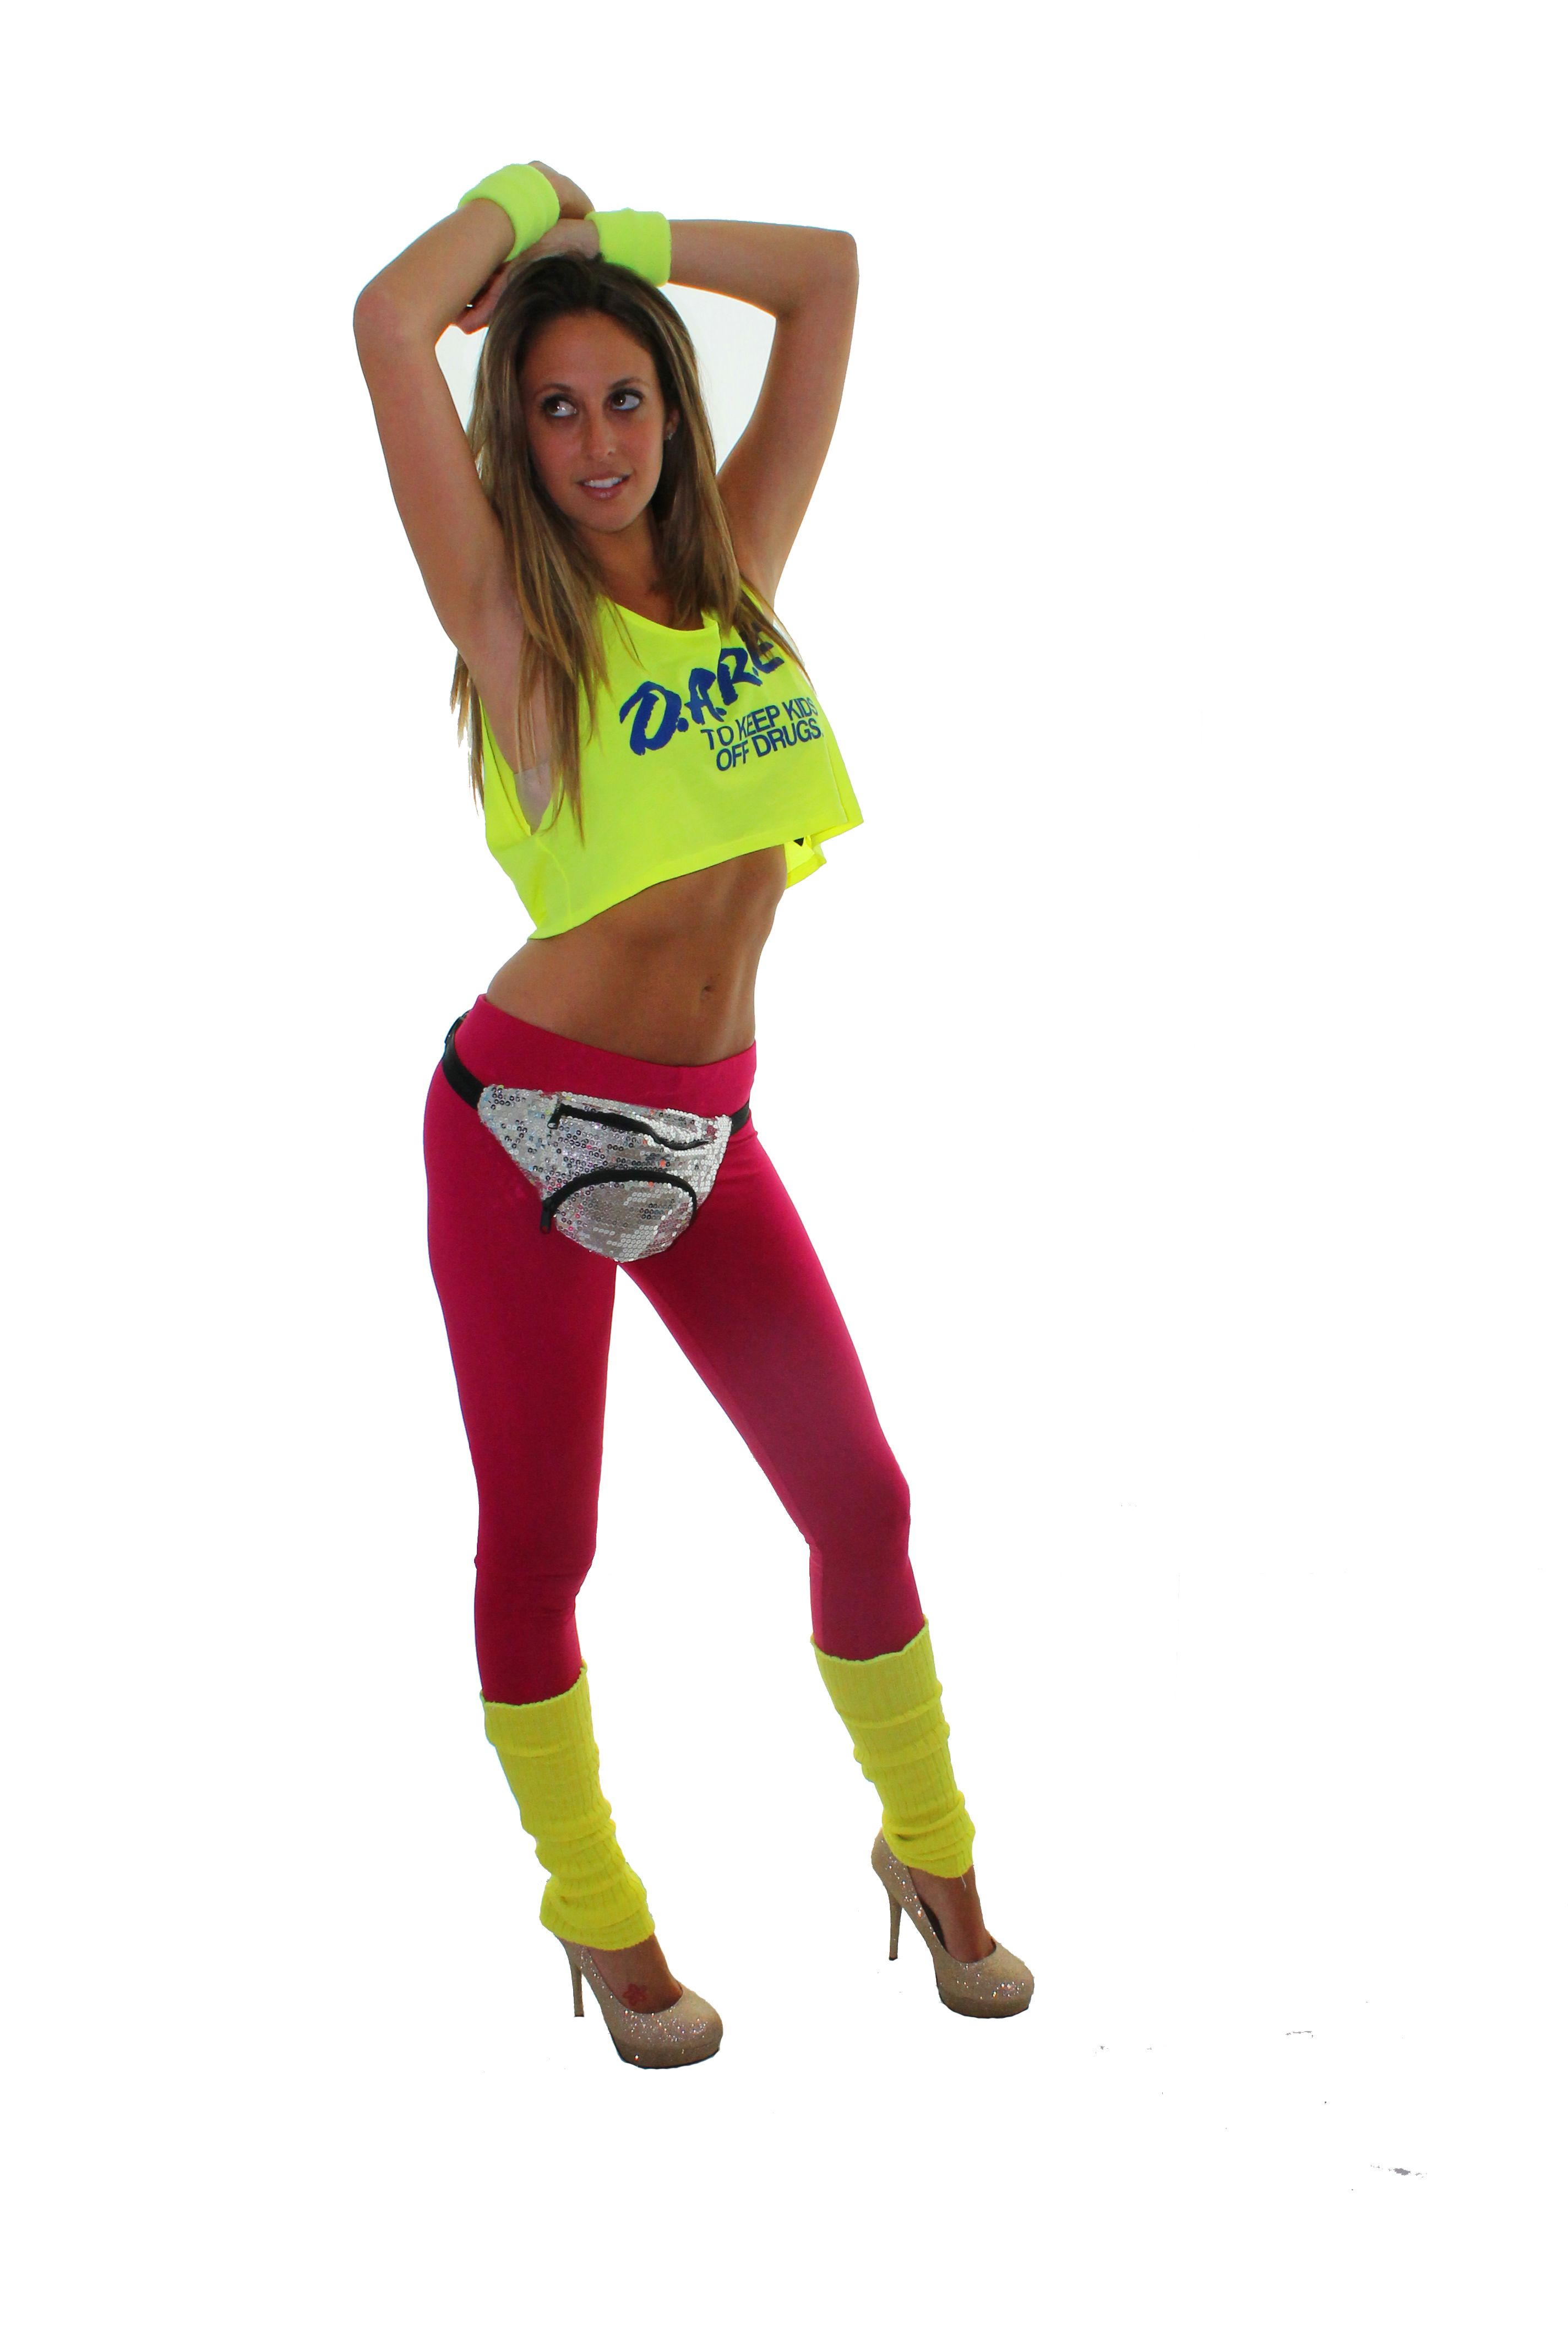 80s fashion from Extreme 80's   80s fashion, 80s outfit ...